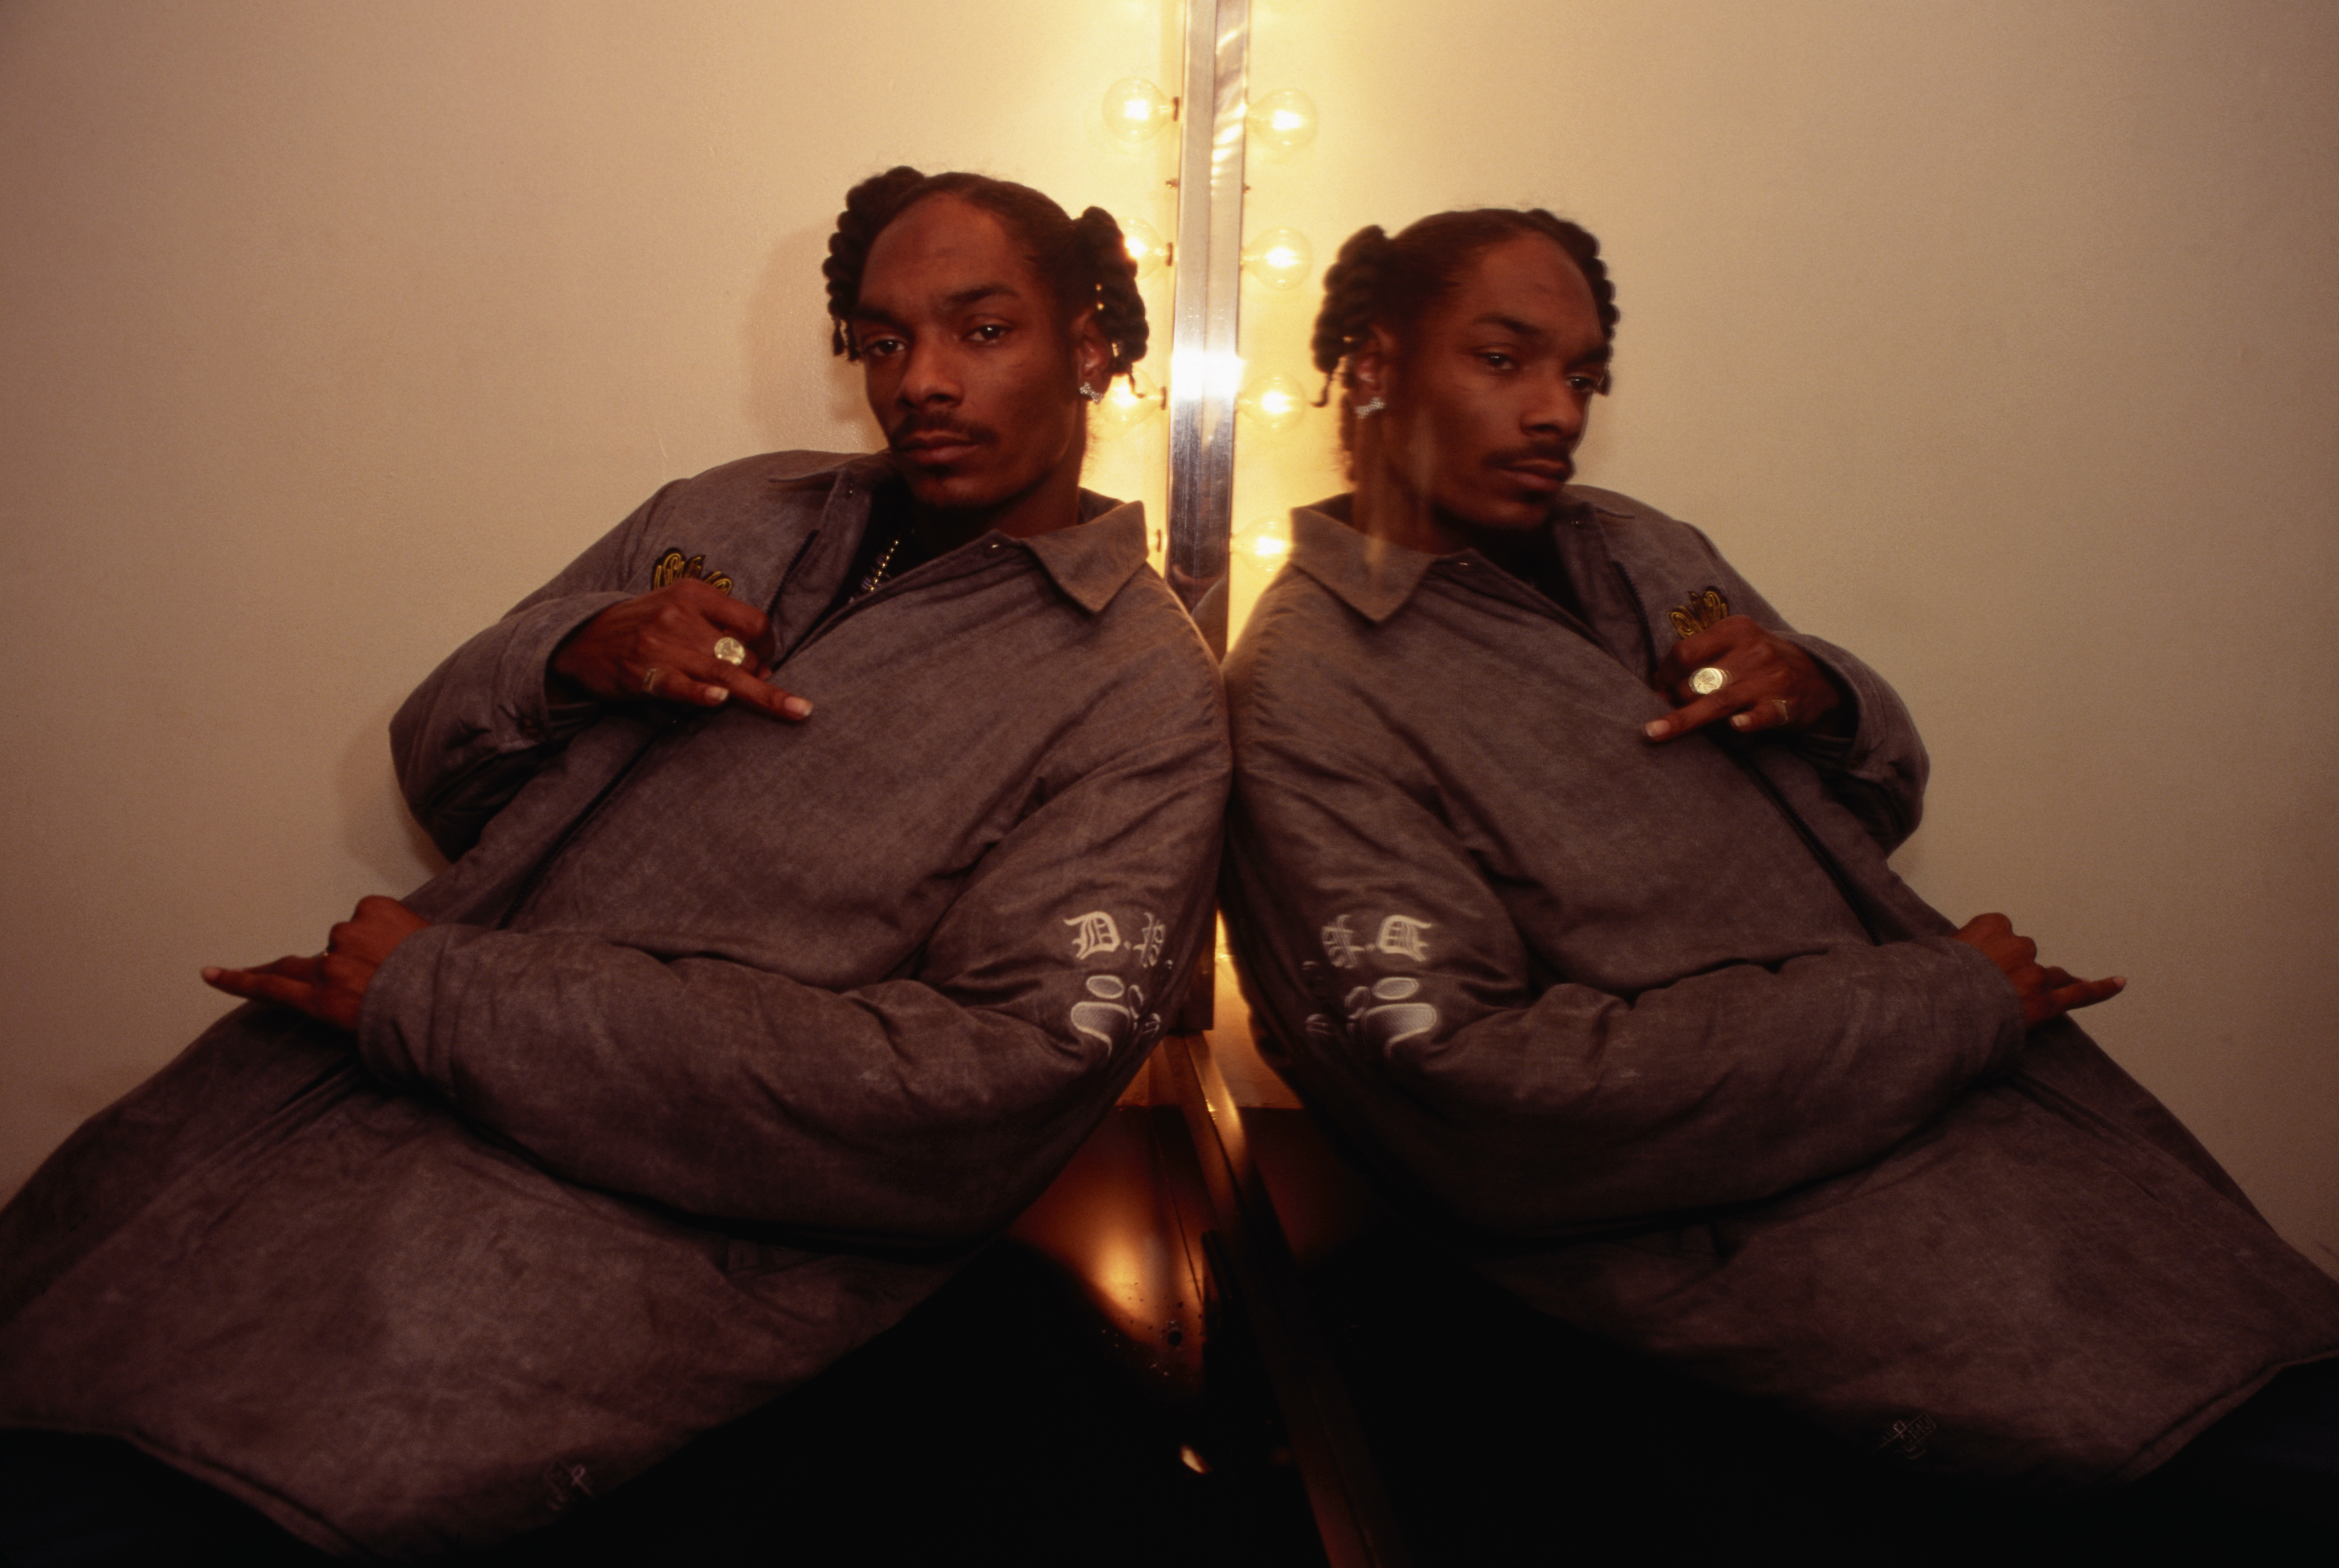 Snoop Doggy Dogg Posing in Front of Mirror